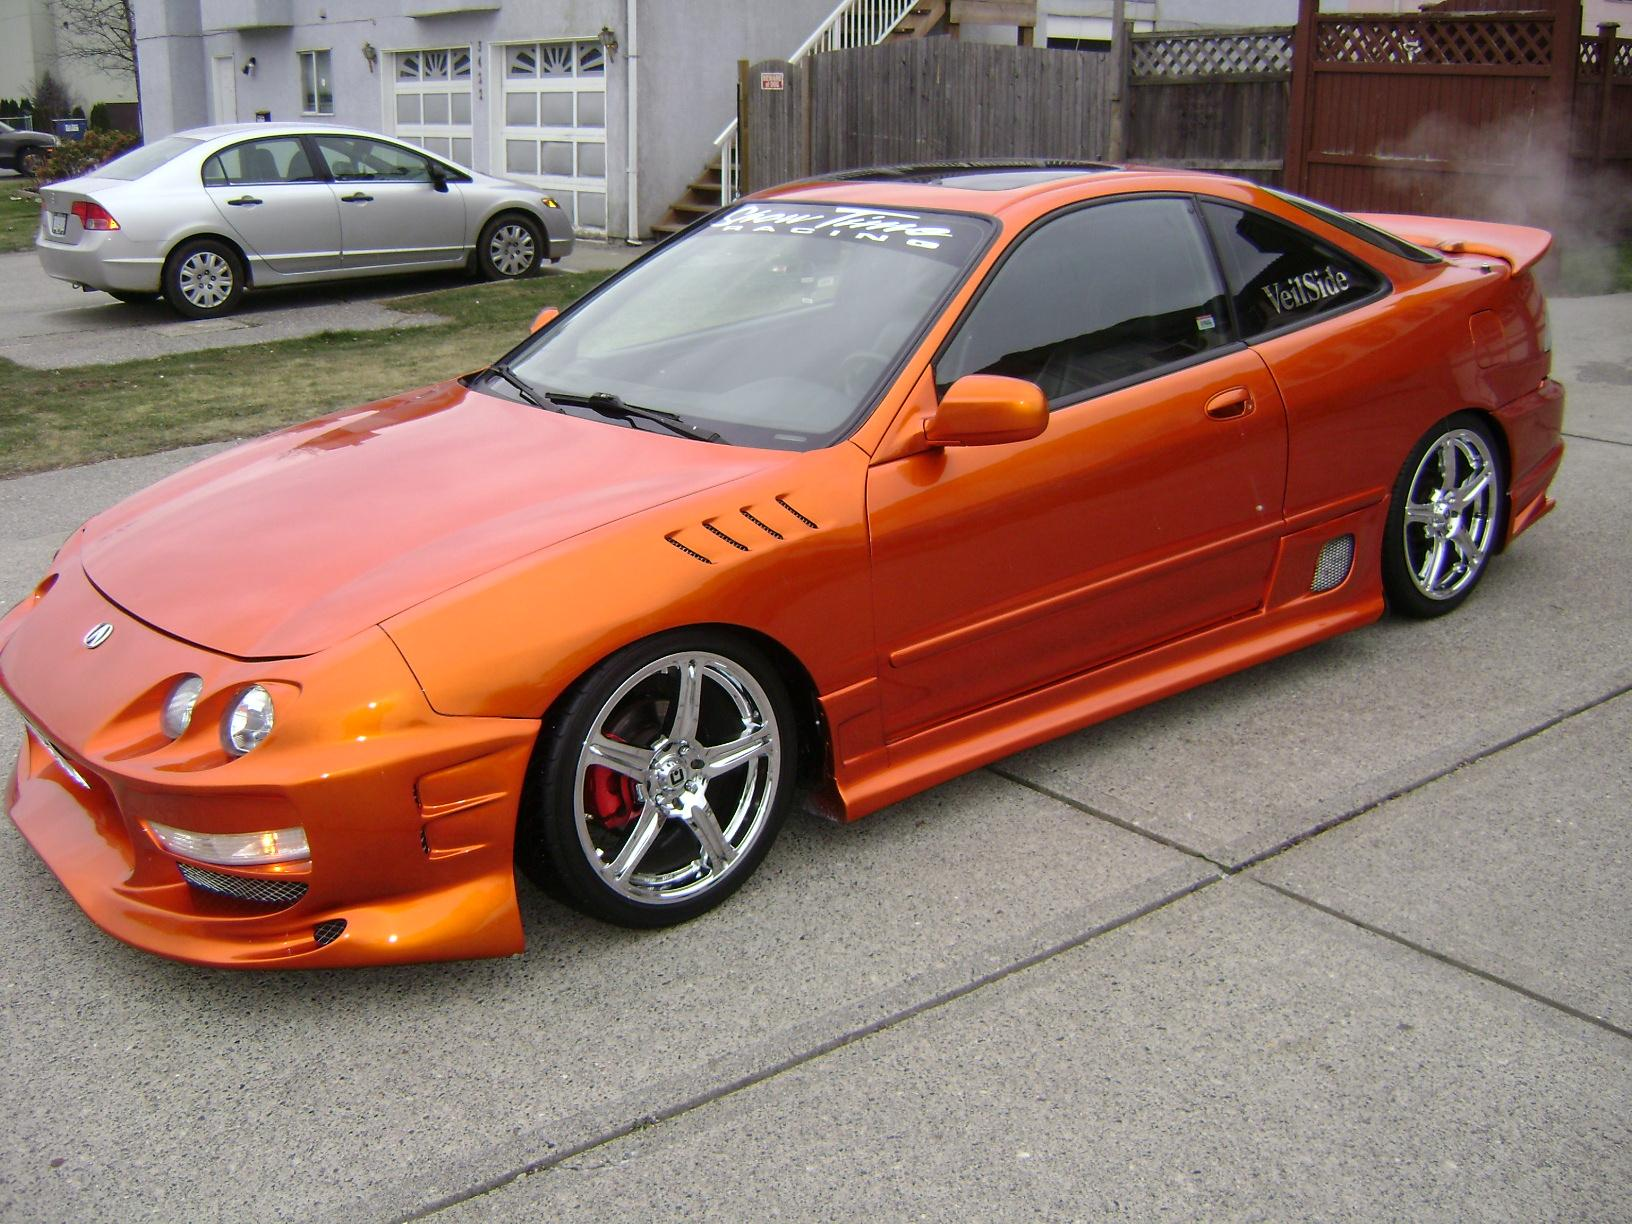 integracustom 2000 acura integra specs photos modification info at cardomain. Black Bedroom Furniture Sets. Home Design Ideas